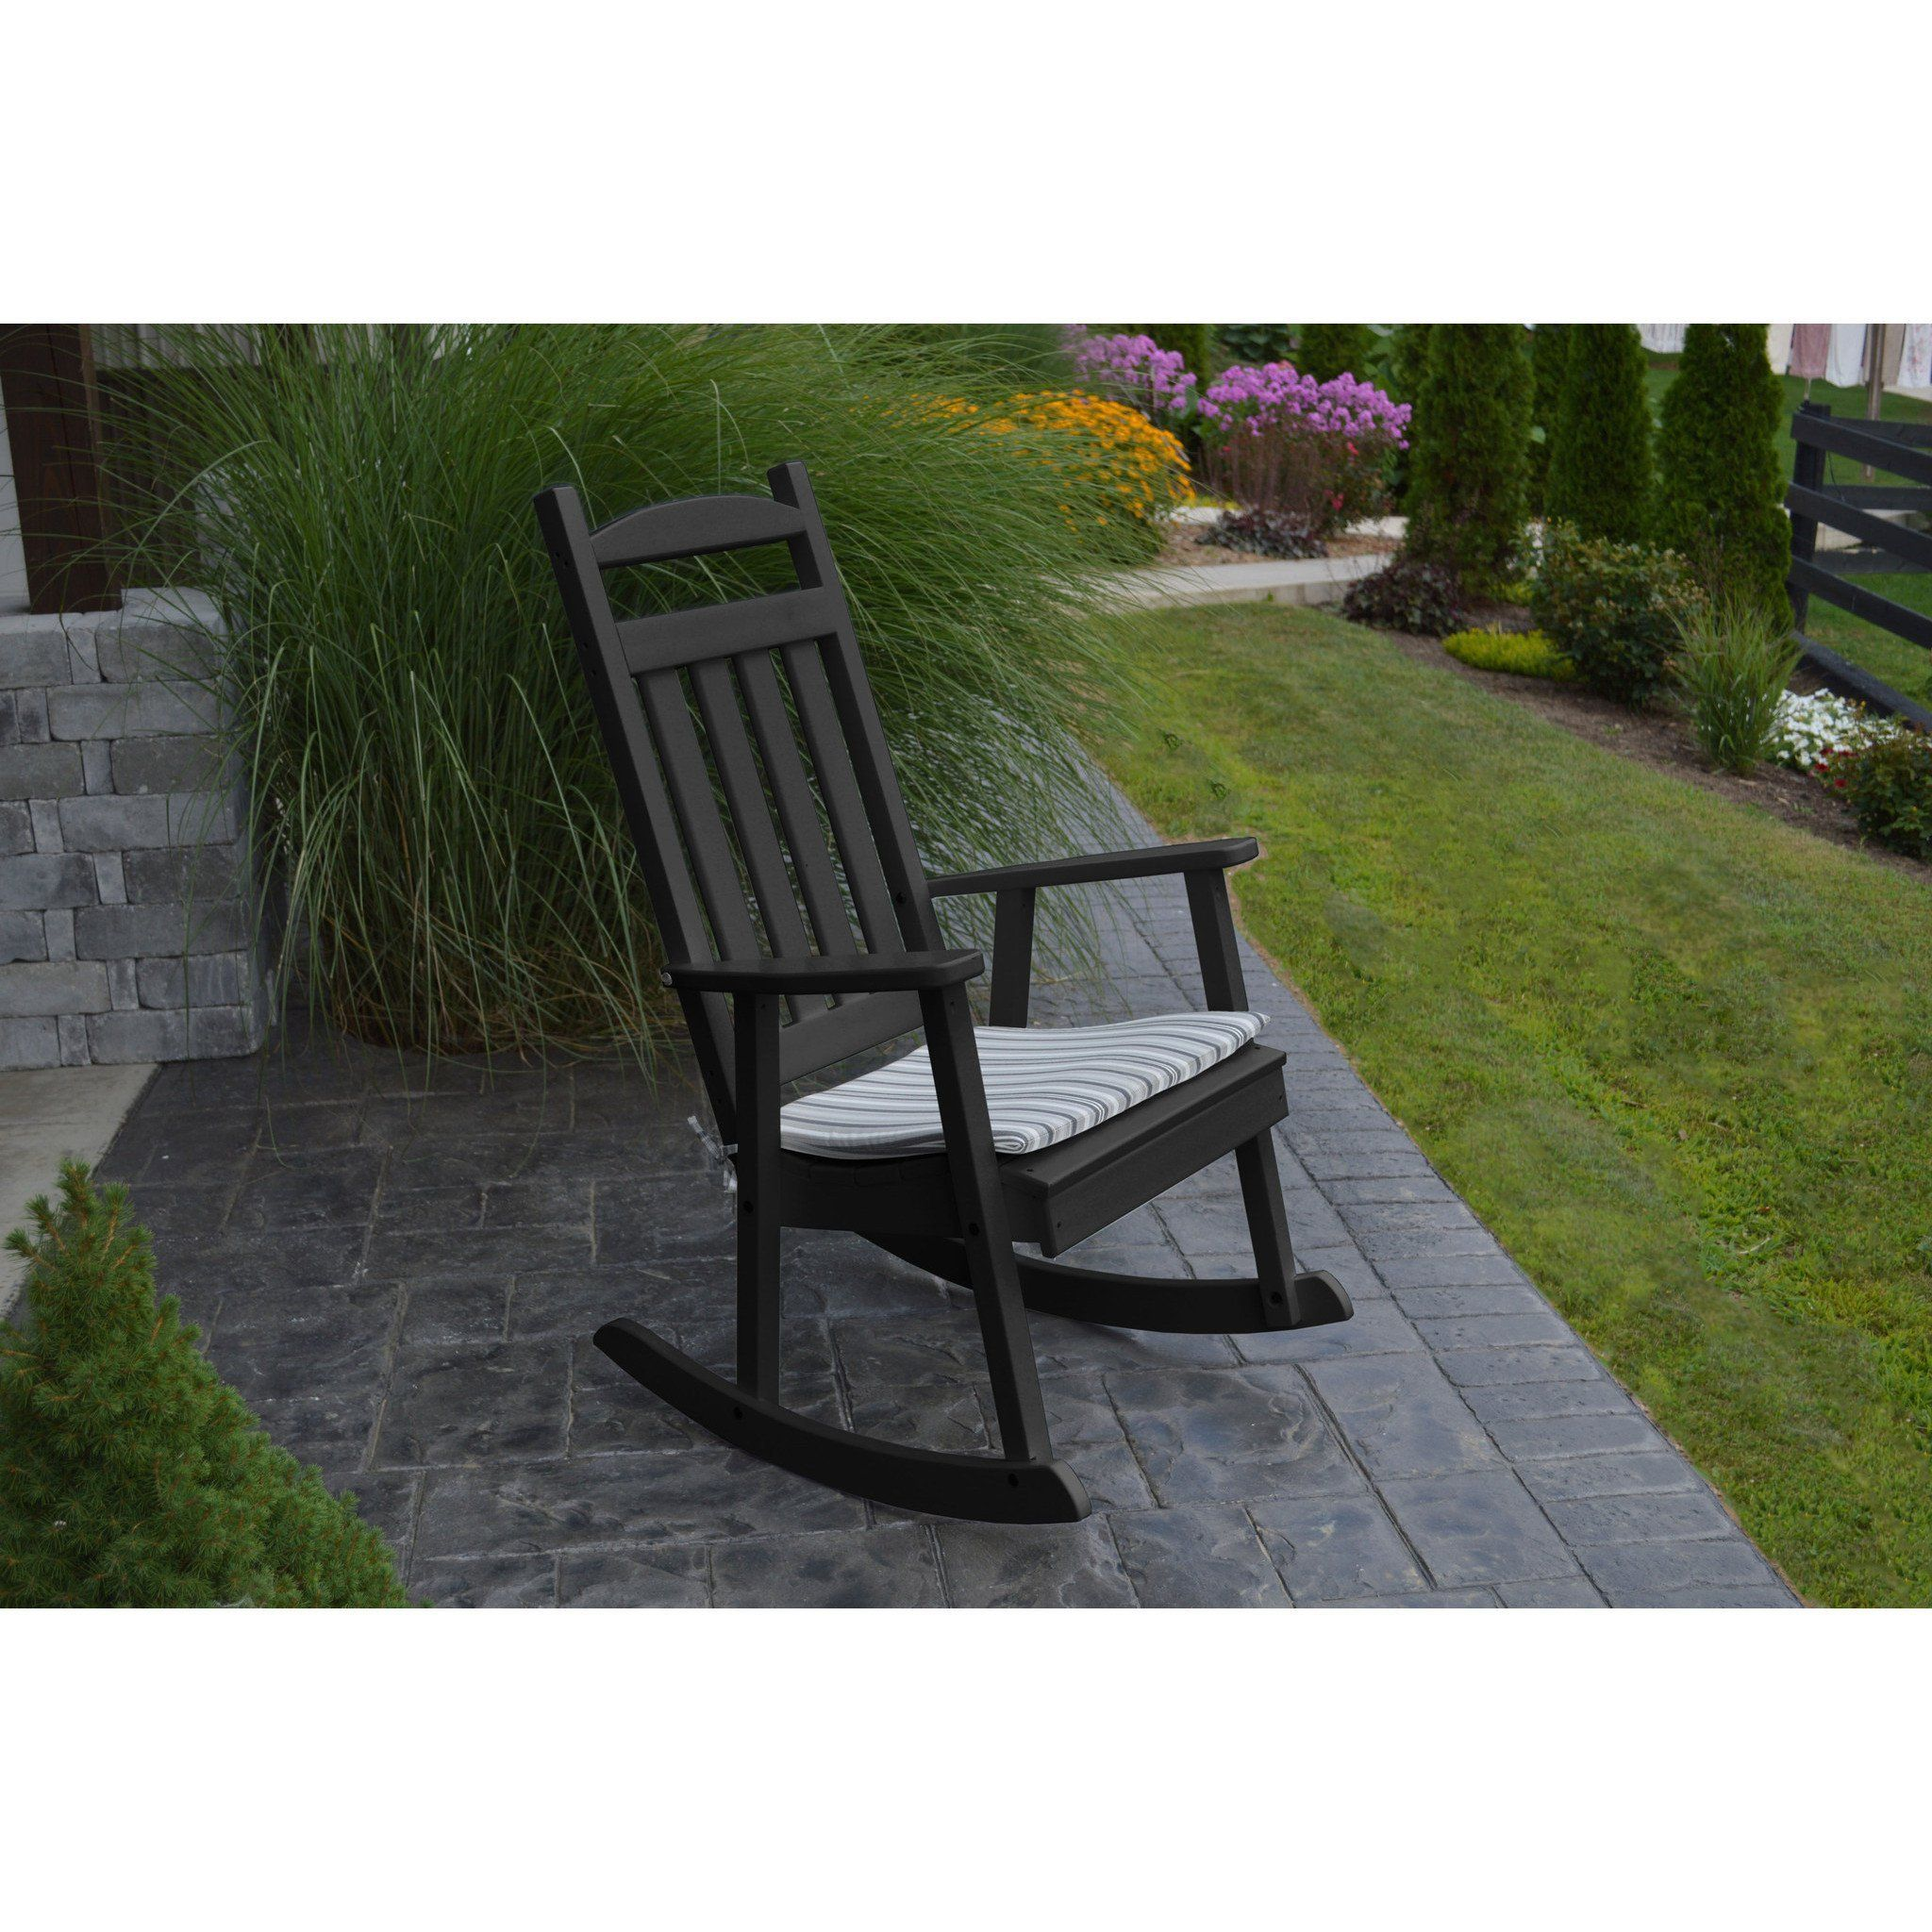 Exceptional Au0026L Furniture Company Classic Recycled Plastic Porch Rocking Chair